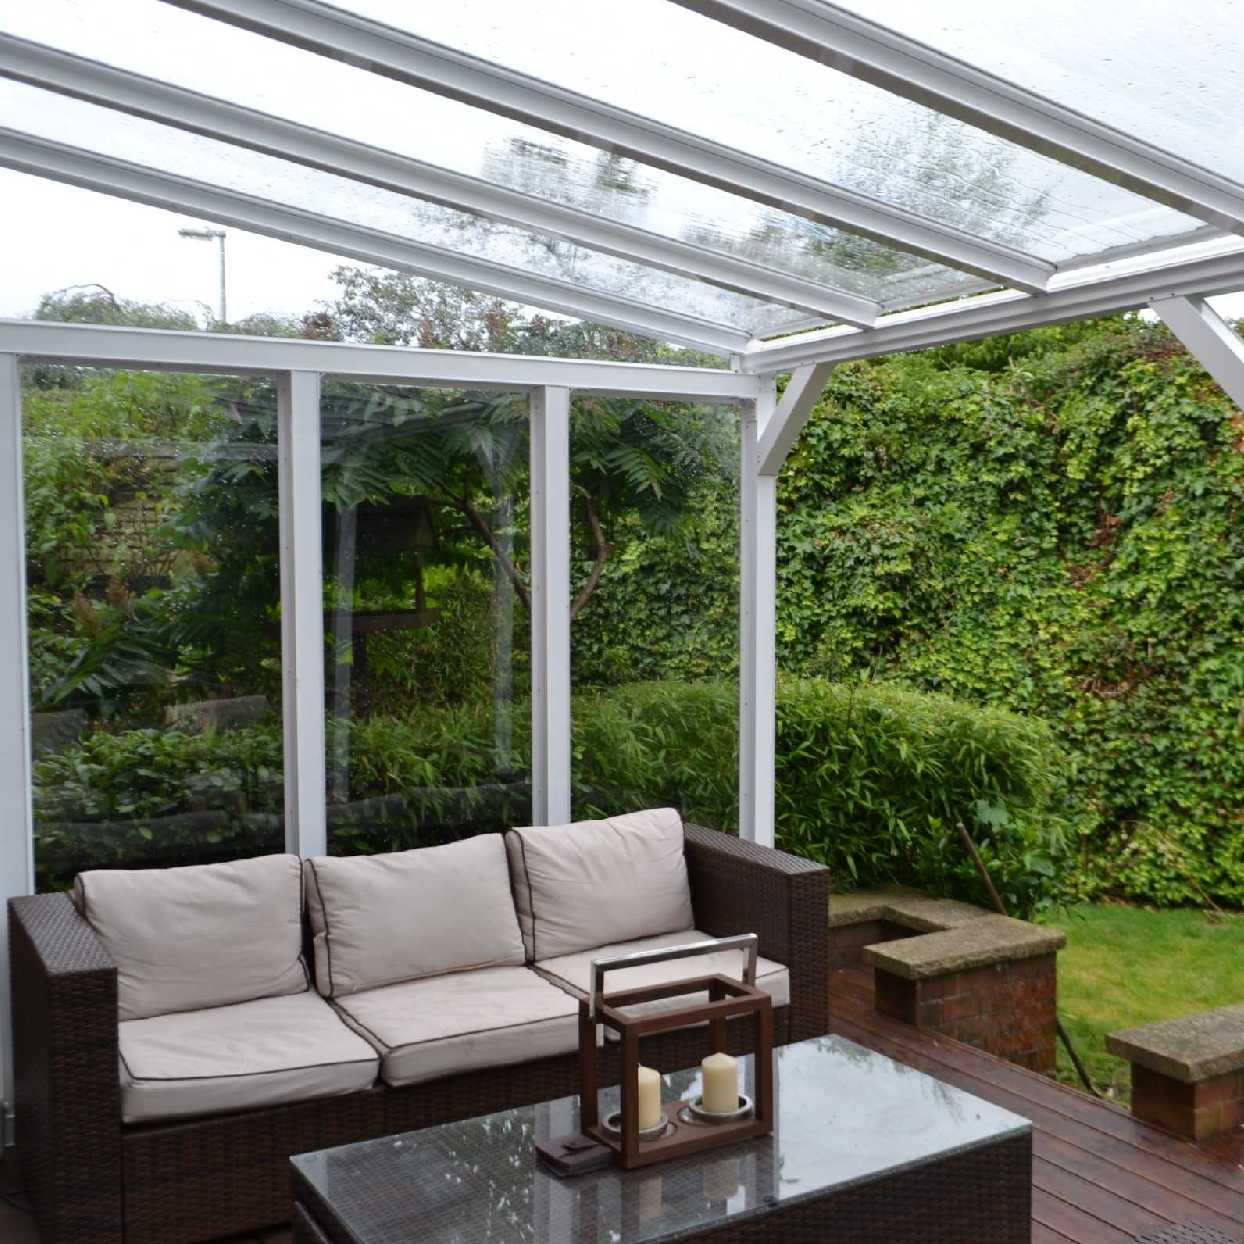 Omega Smart White Lean-To Canopy with 6mm Glass Clear Plate Polycarbonate Glazing - 2.8m (W) x 2.0m (P), (2) Supporting Posts